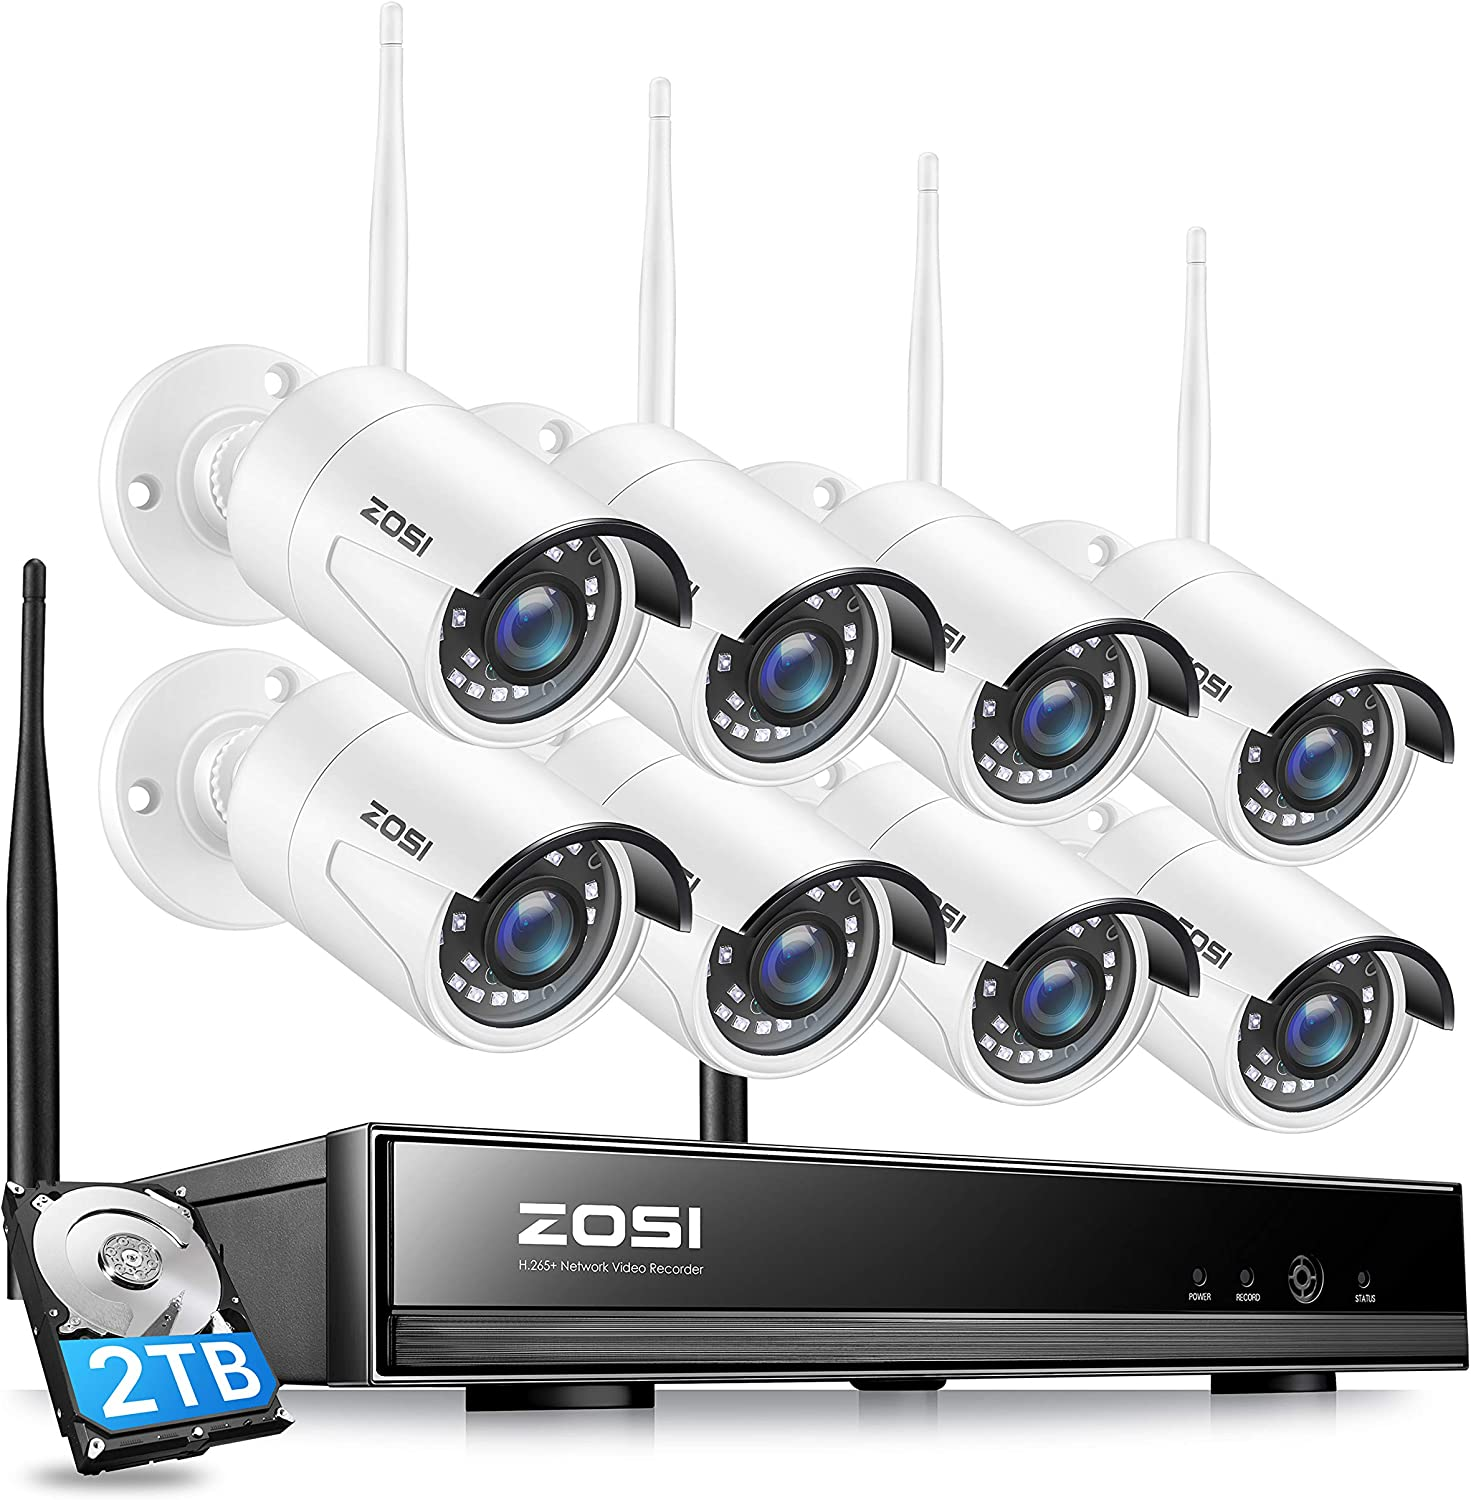 ZOSI H.265+ 8CH 1080P Wireless Security Camera System with 2TB Hard Drive,8Channel 1080P CCTV NVR, 8PCS 1080P 2.0MP Indoor Outdoor Surveillance IP Cameras with Night Vision,Motion Alert, Remote Access